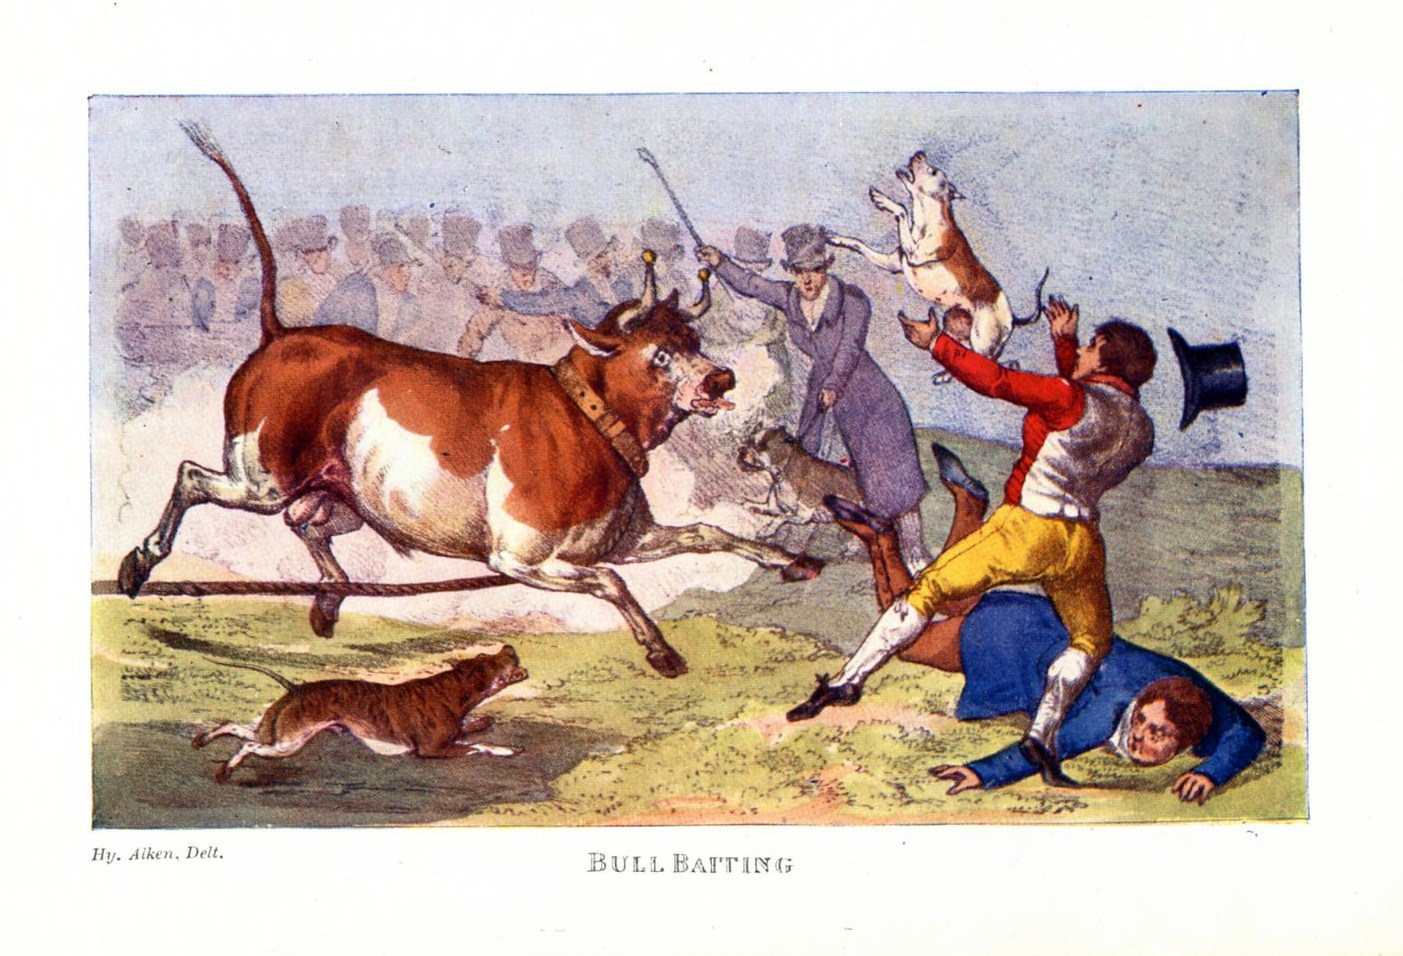 Culture Of Violence >> Bull-baiting in eighteenth century Dublin. | Come Here To Me!